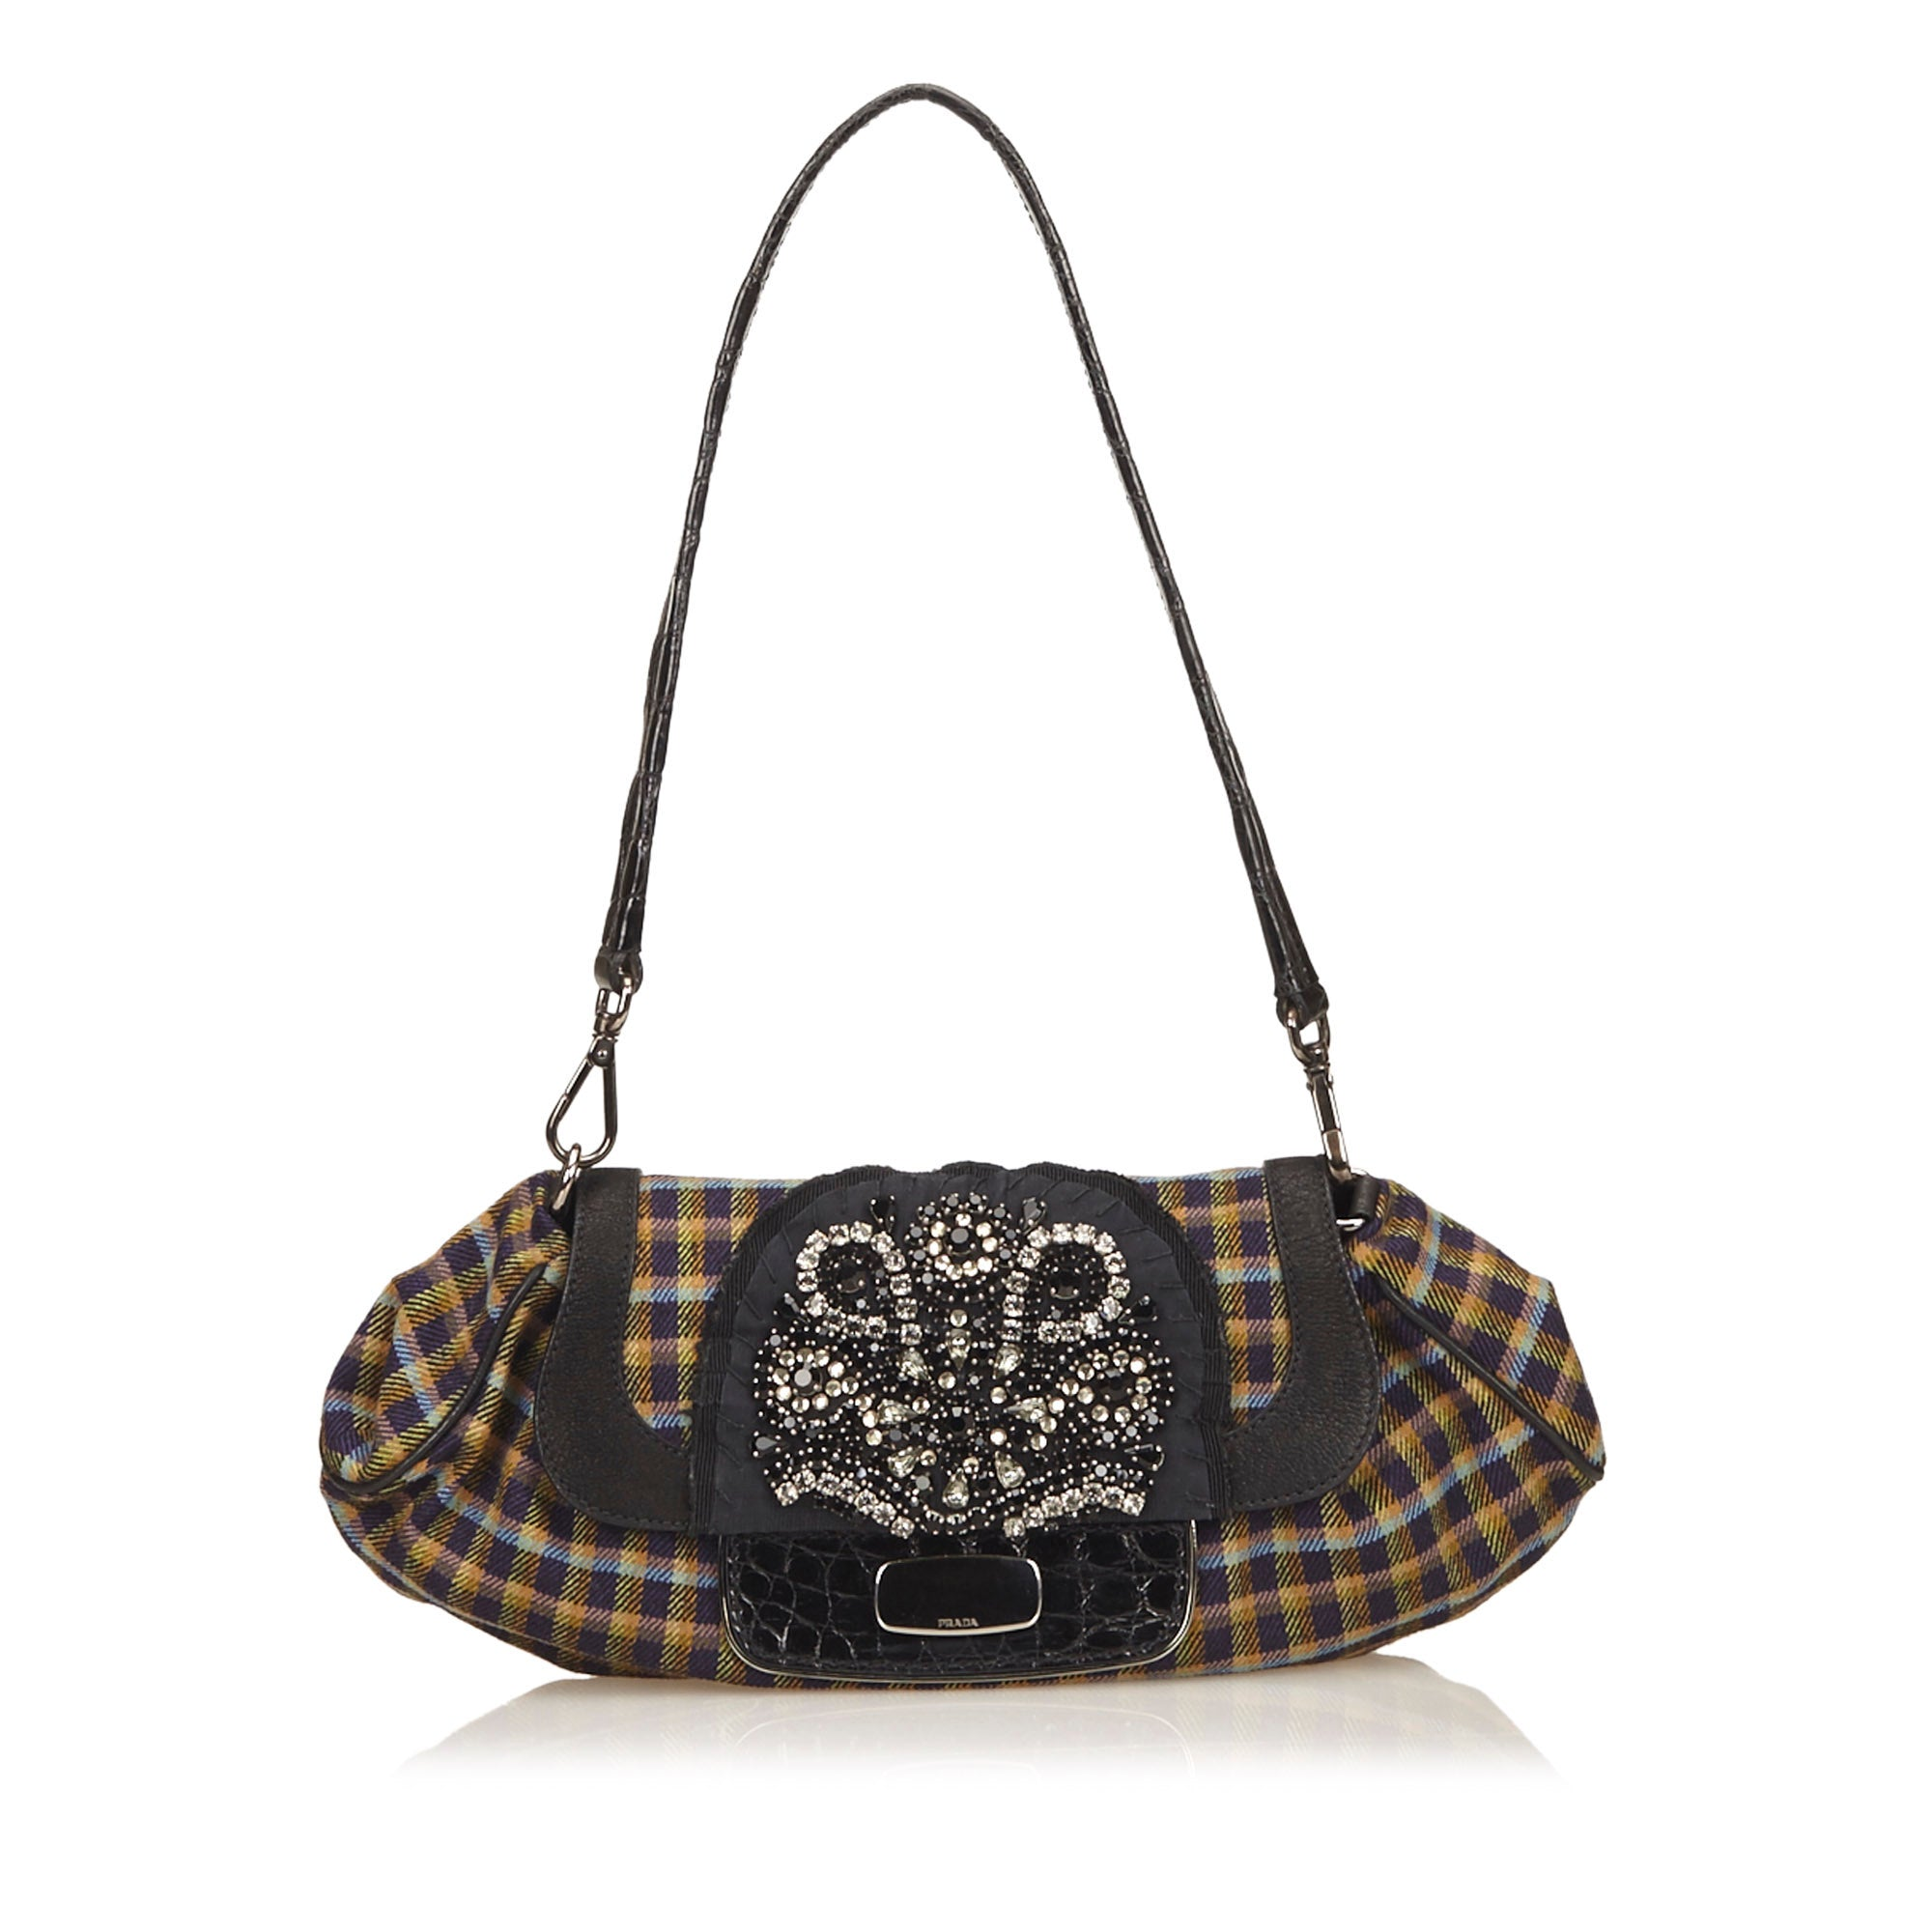 Prada Plaid Studded Shoulder Bag